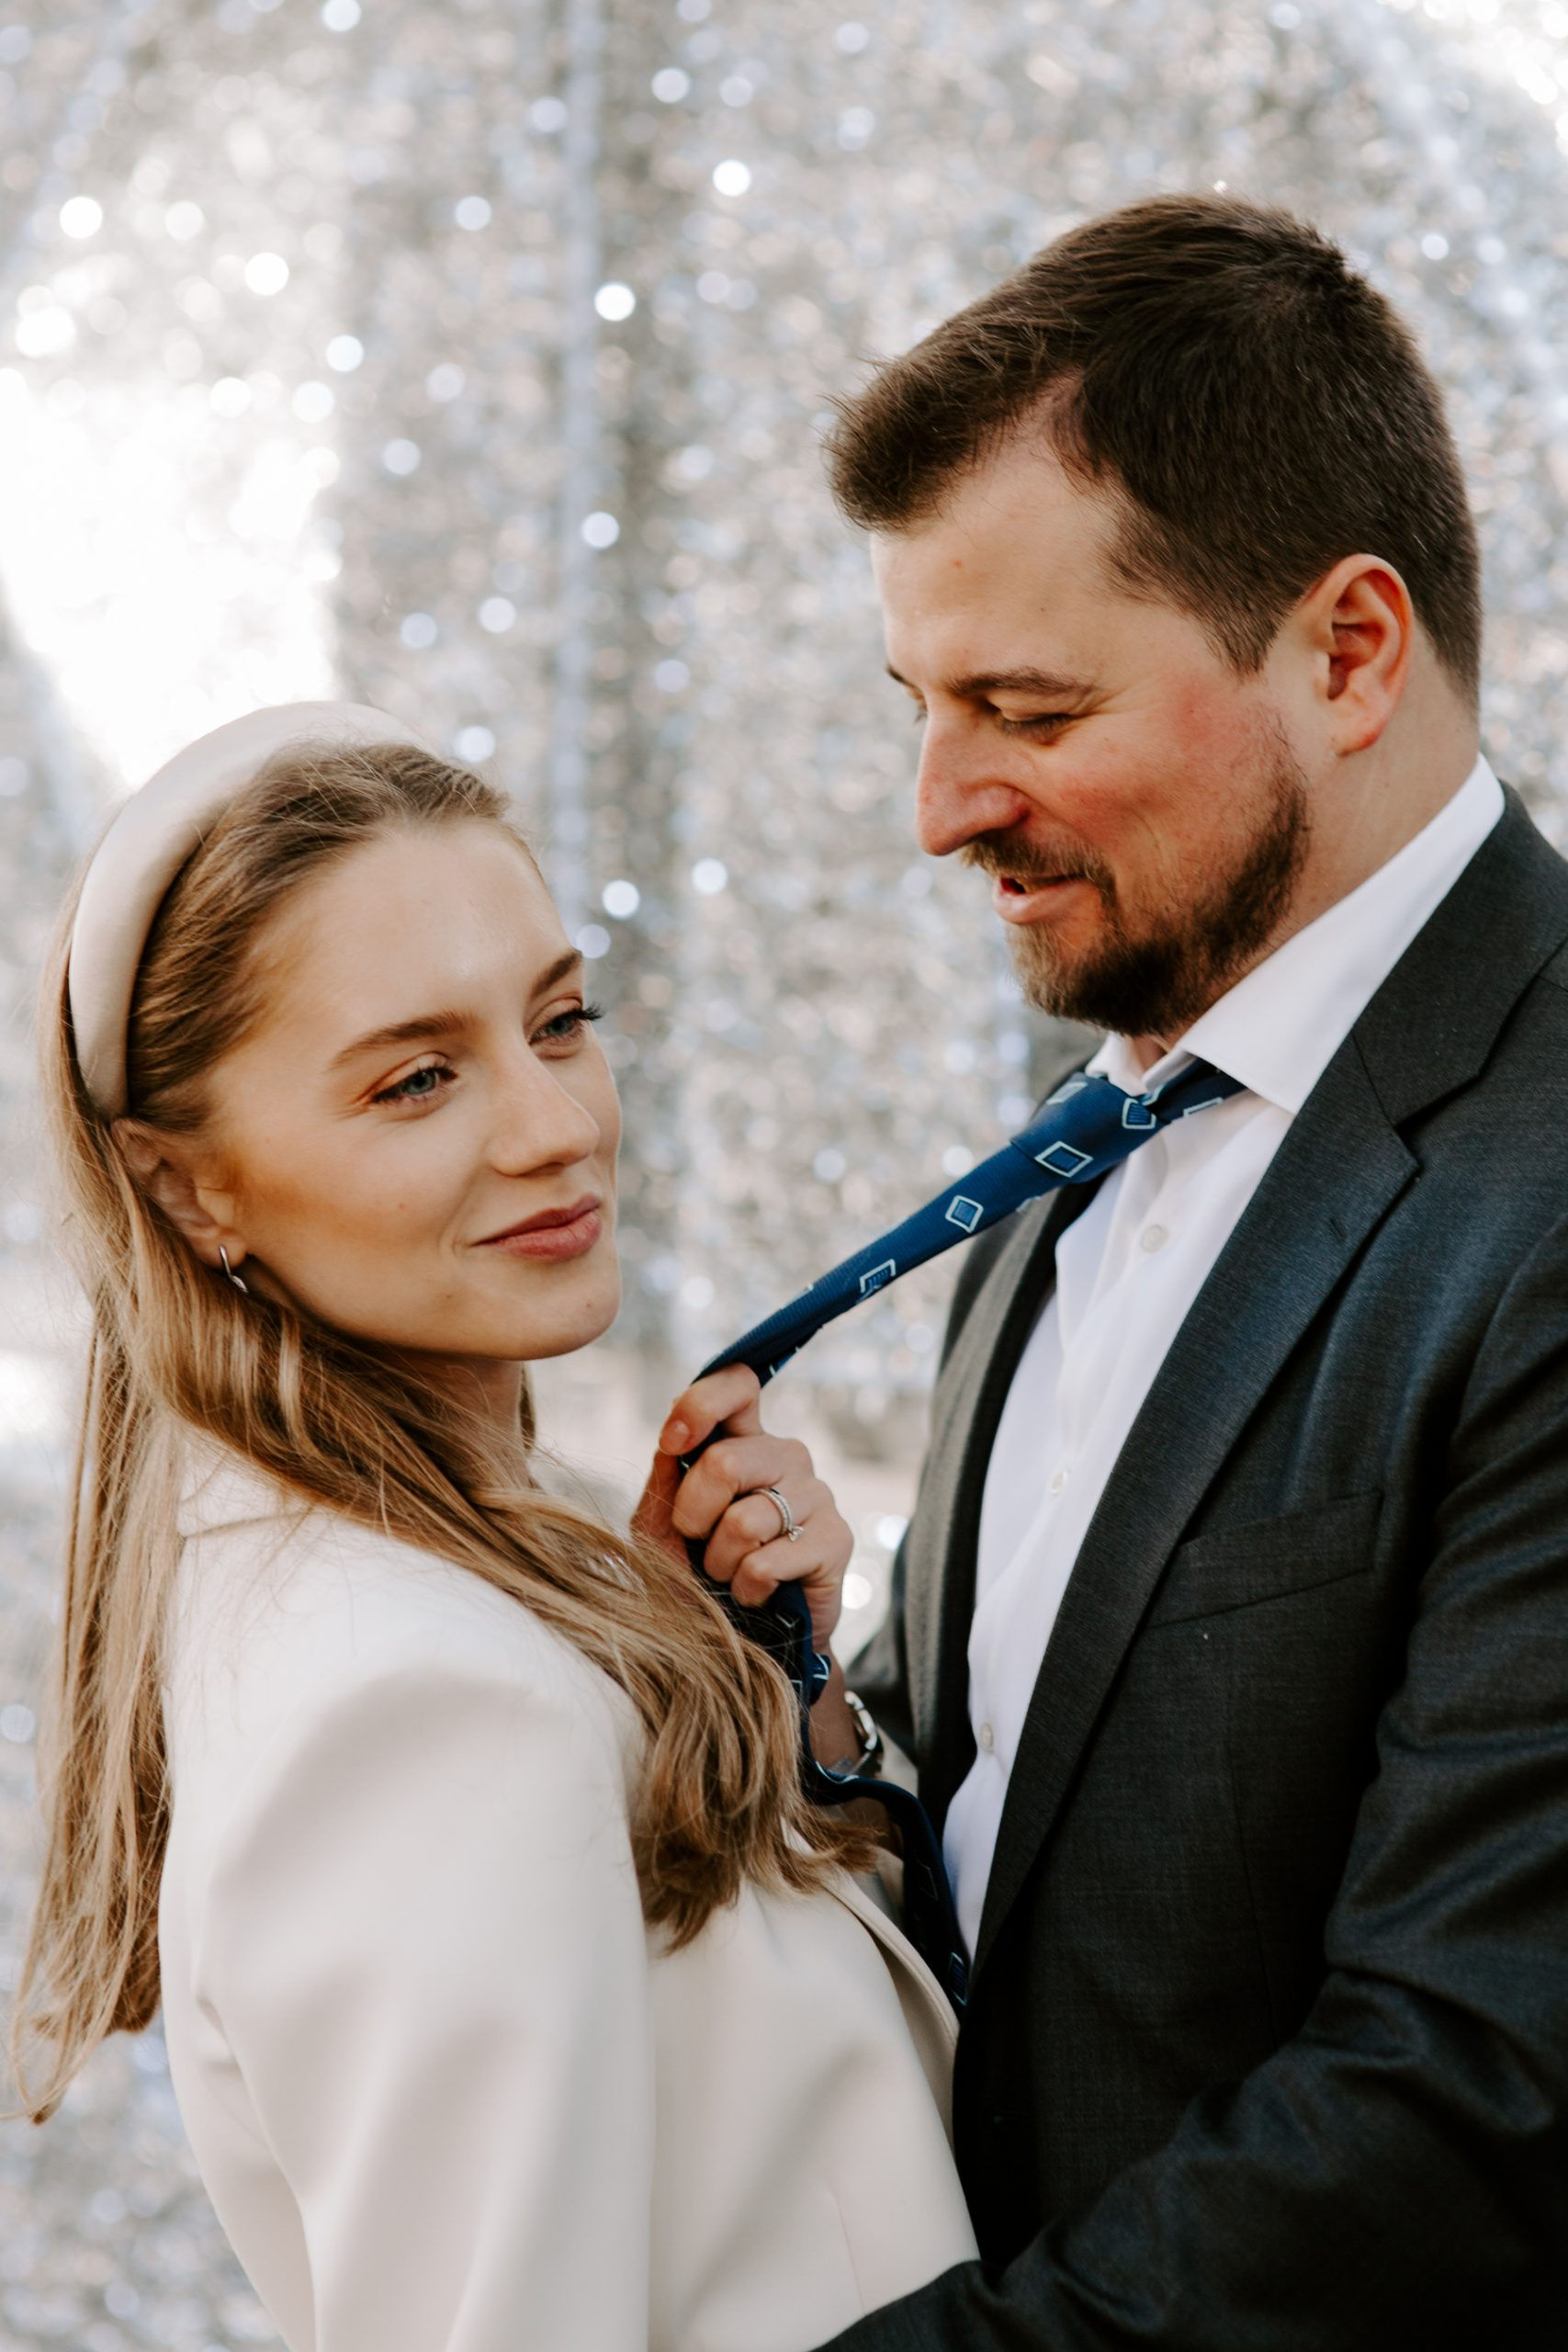 Bride pulling her groom to her with tie